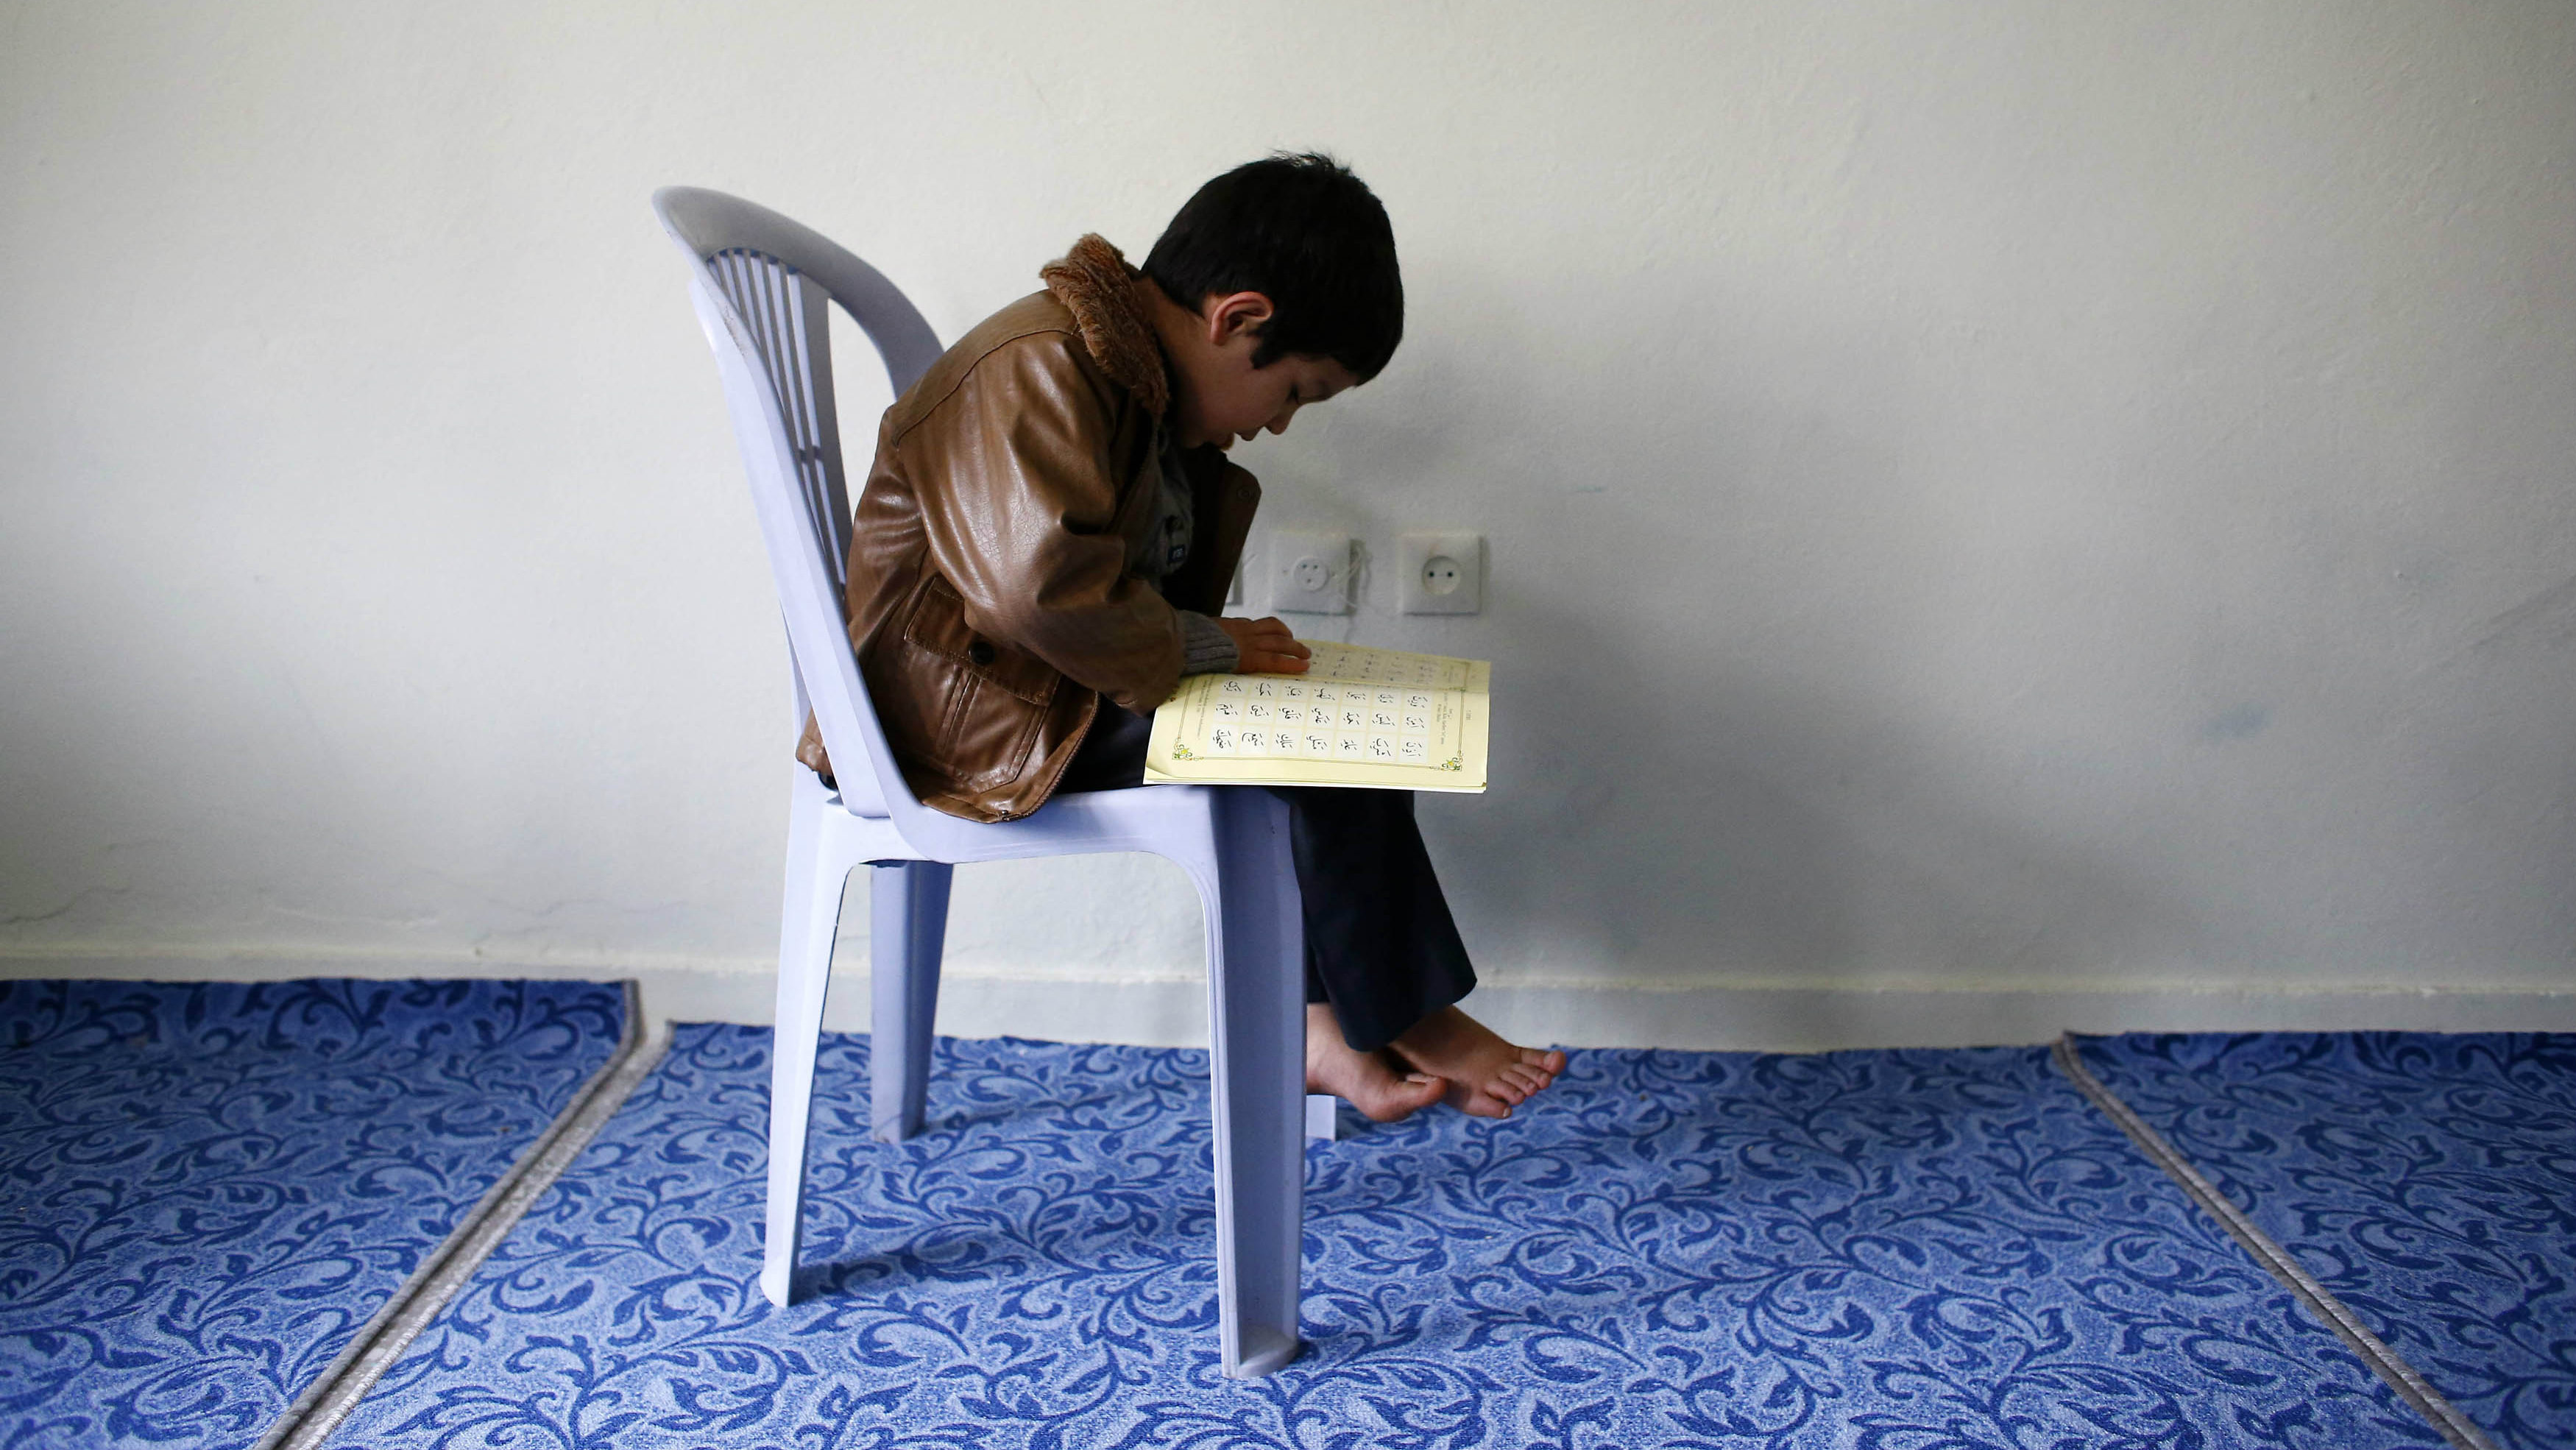 An Uighur refugee boy reads the Koran where he is housed in a gated complex in the central city of Kayseri, Turkey, February 11, 2015. Thousands of members of China's Turkic language-speaking Muslim ethnic minority have reached Turkey, mostly since last year, infuriating Beijing, which accuses Ankara of helping its citizens flee unlawfully. Turkish officials deny playing any direct role in assisting the flight. Picture taken February 11, 2015. To match Insight TURKEY-CHINA/UIGHURS REUTERS/Umit Bektas